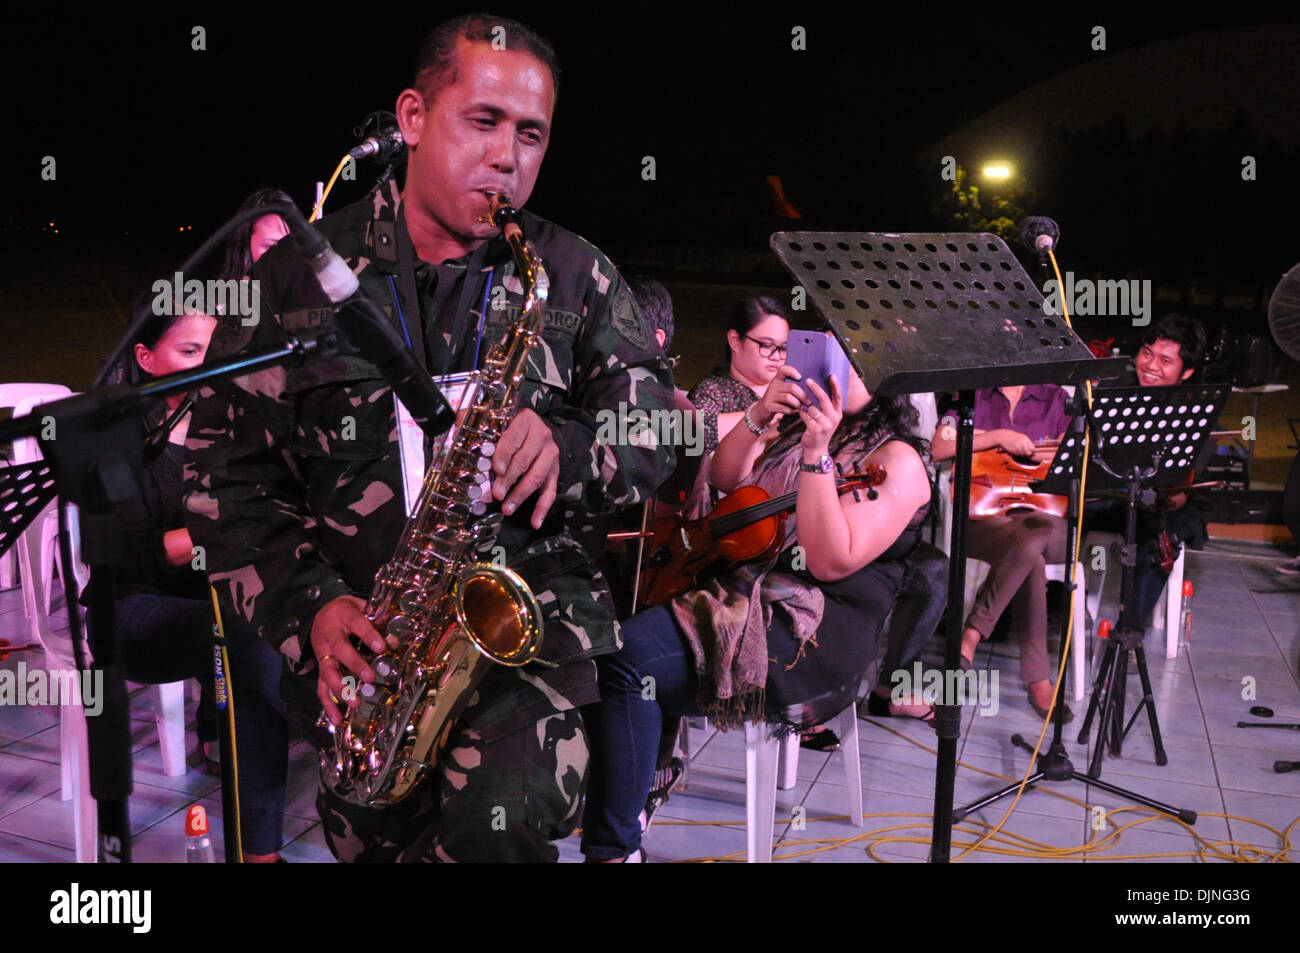 Pasay city, Manila, Philippines. 29th November 2013. A Philippine Airforce officer joins volunteer musicians in playing music inside the Villamor Airbase in Pasay city, south of Manila, Philippines on Friday, 29 November 2013. Credit:  George Calvelo/Alamy Live News - Stock Image